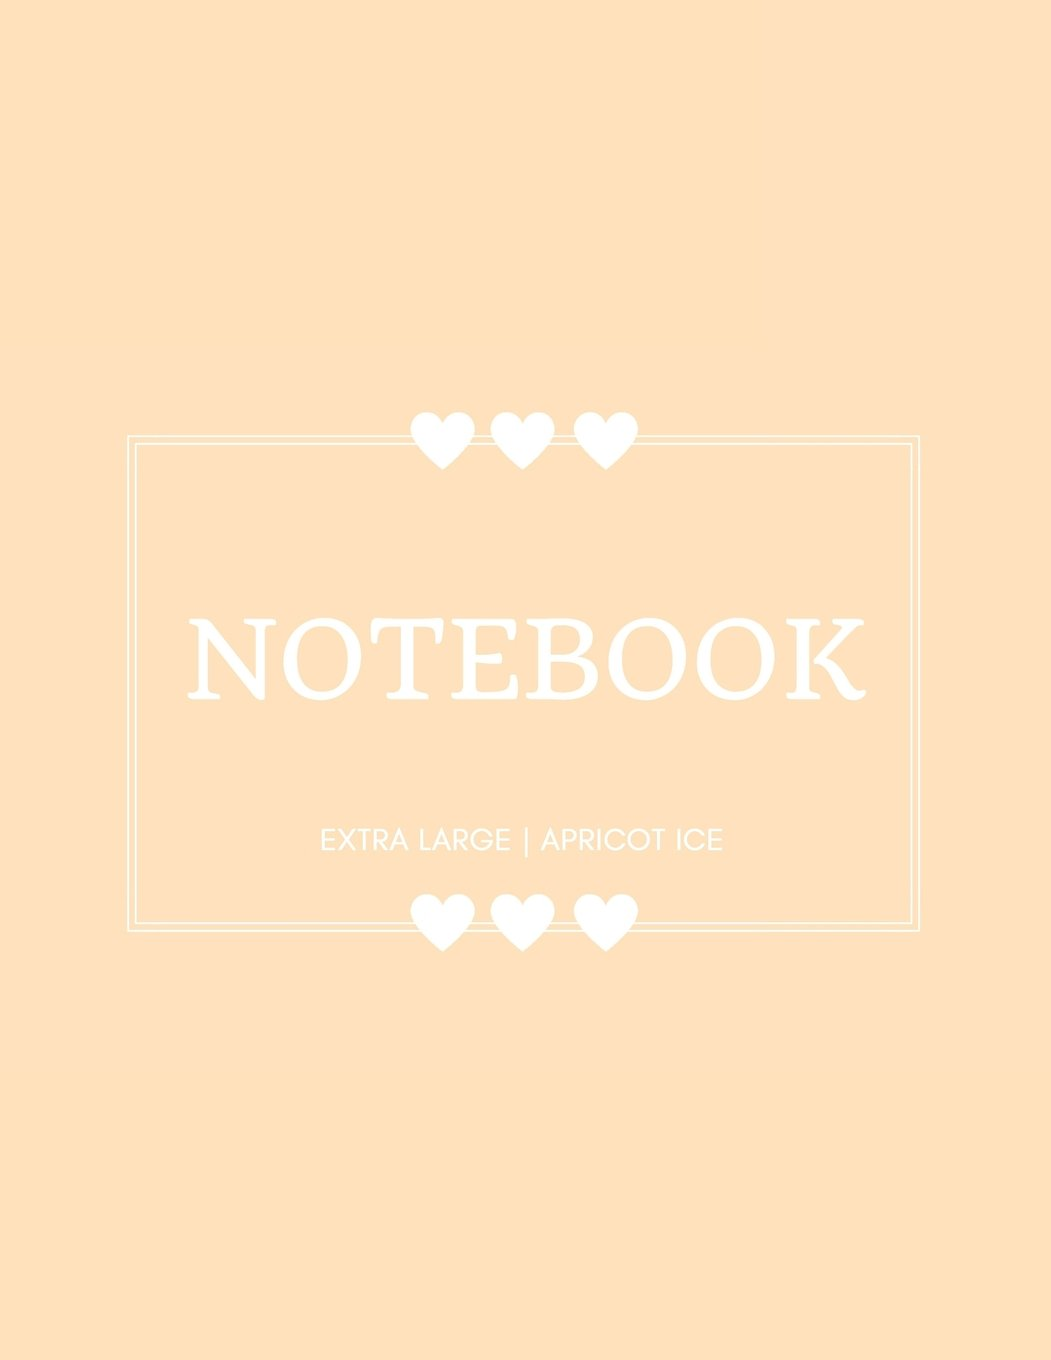 Download Notebook Extra Large: Apricot Ice: Notebook 8.5 x 11: Notebook 400 Pages pdf epub